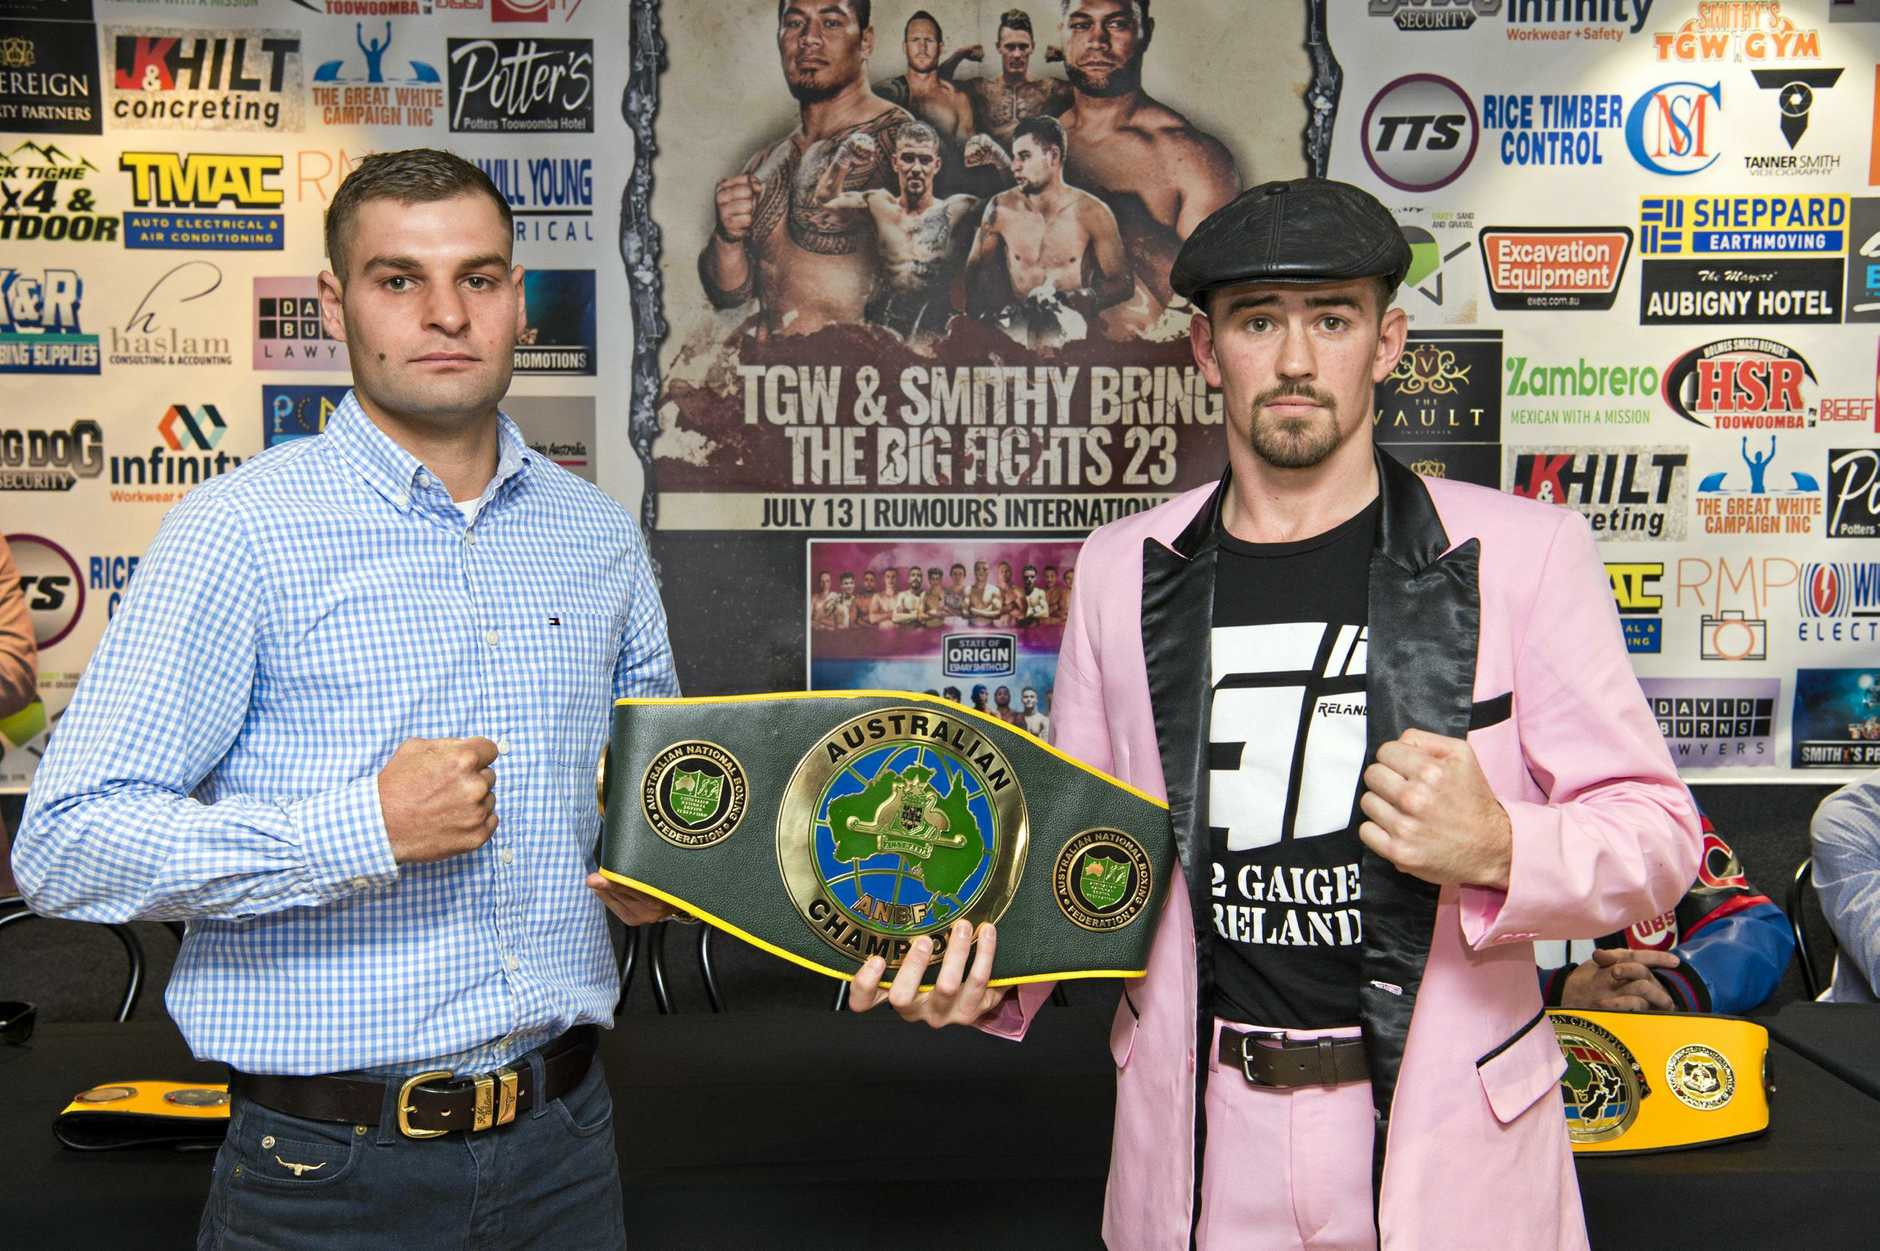 FIGHT NIGHT: Toowoomba's Brent Rice (left) and Gaige Ireland will fight for the Australian Lightweight Title on the TGW and Smith Bring The Big Fights 23 card at Rumours International this Saturday.